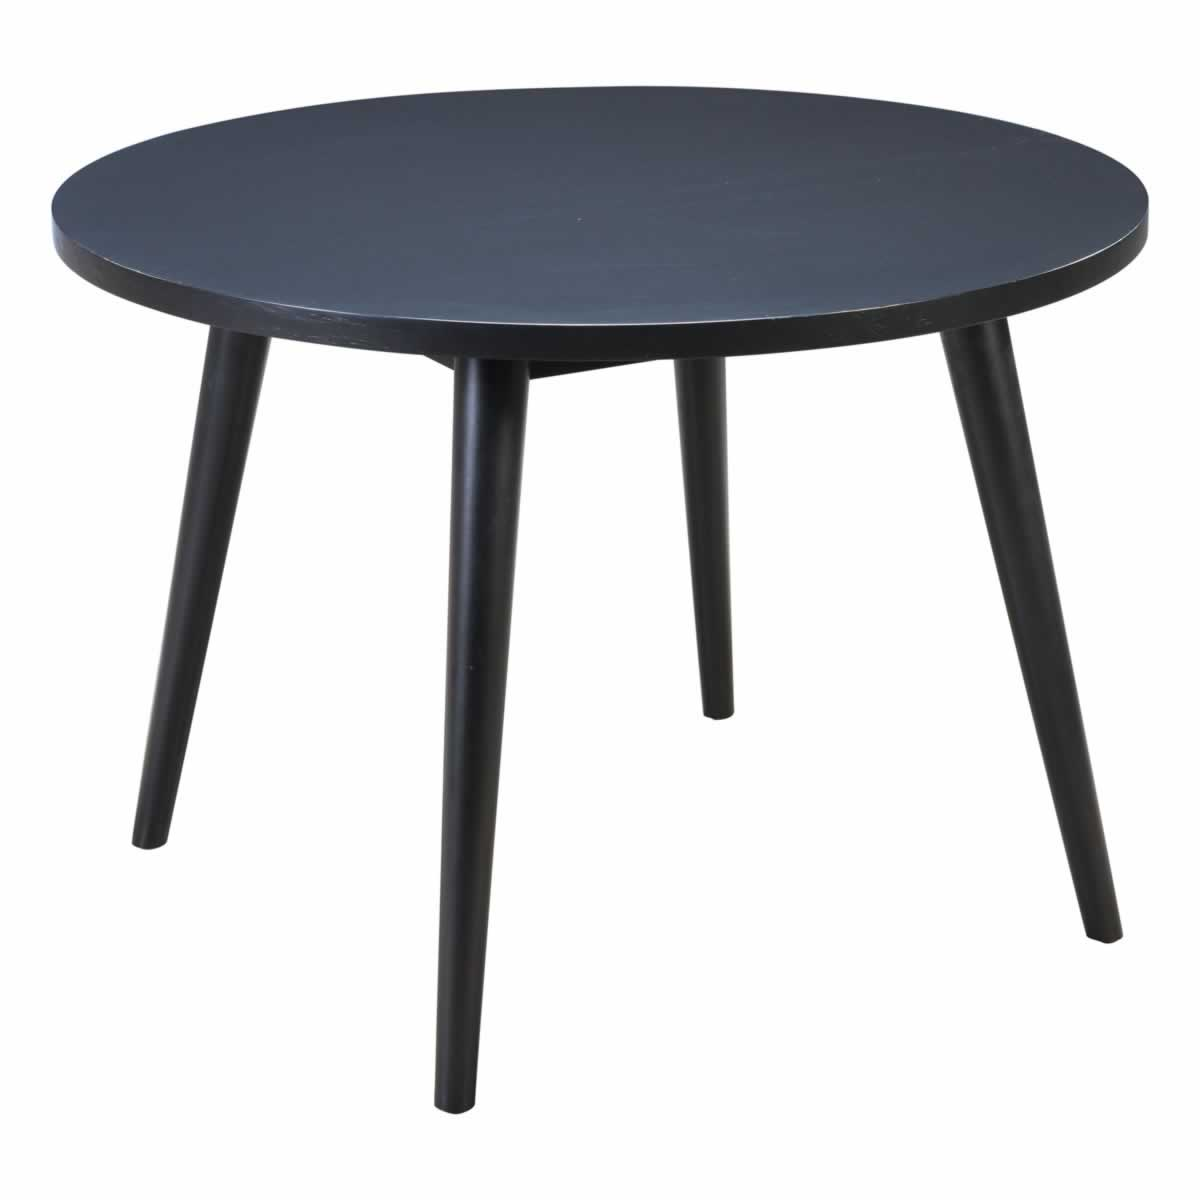 Zuo Modern Dining Table Round